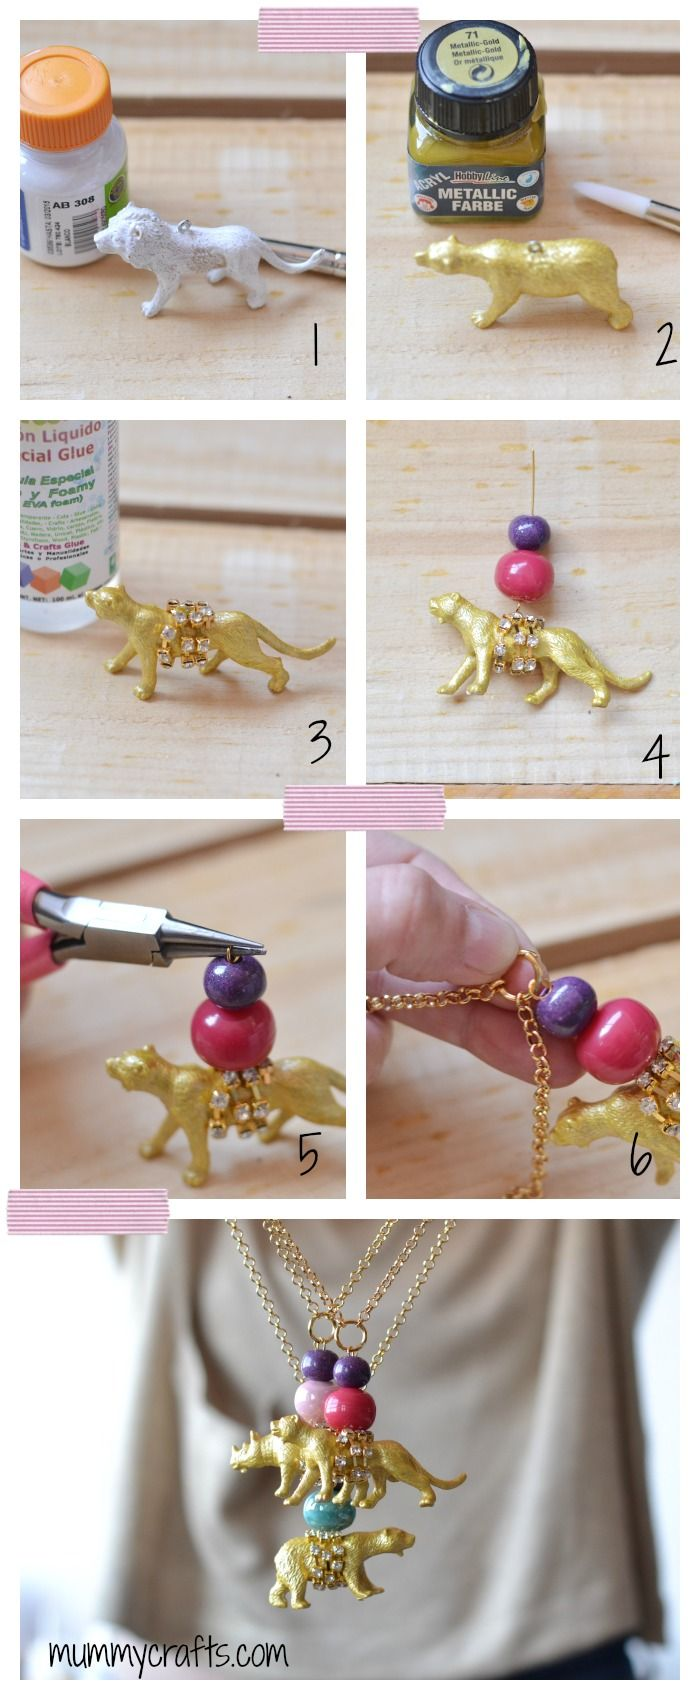 How to make necklaces with plastic animals step by step - but definitely not in gold!